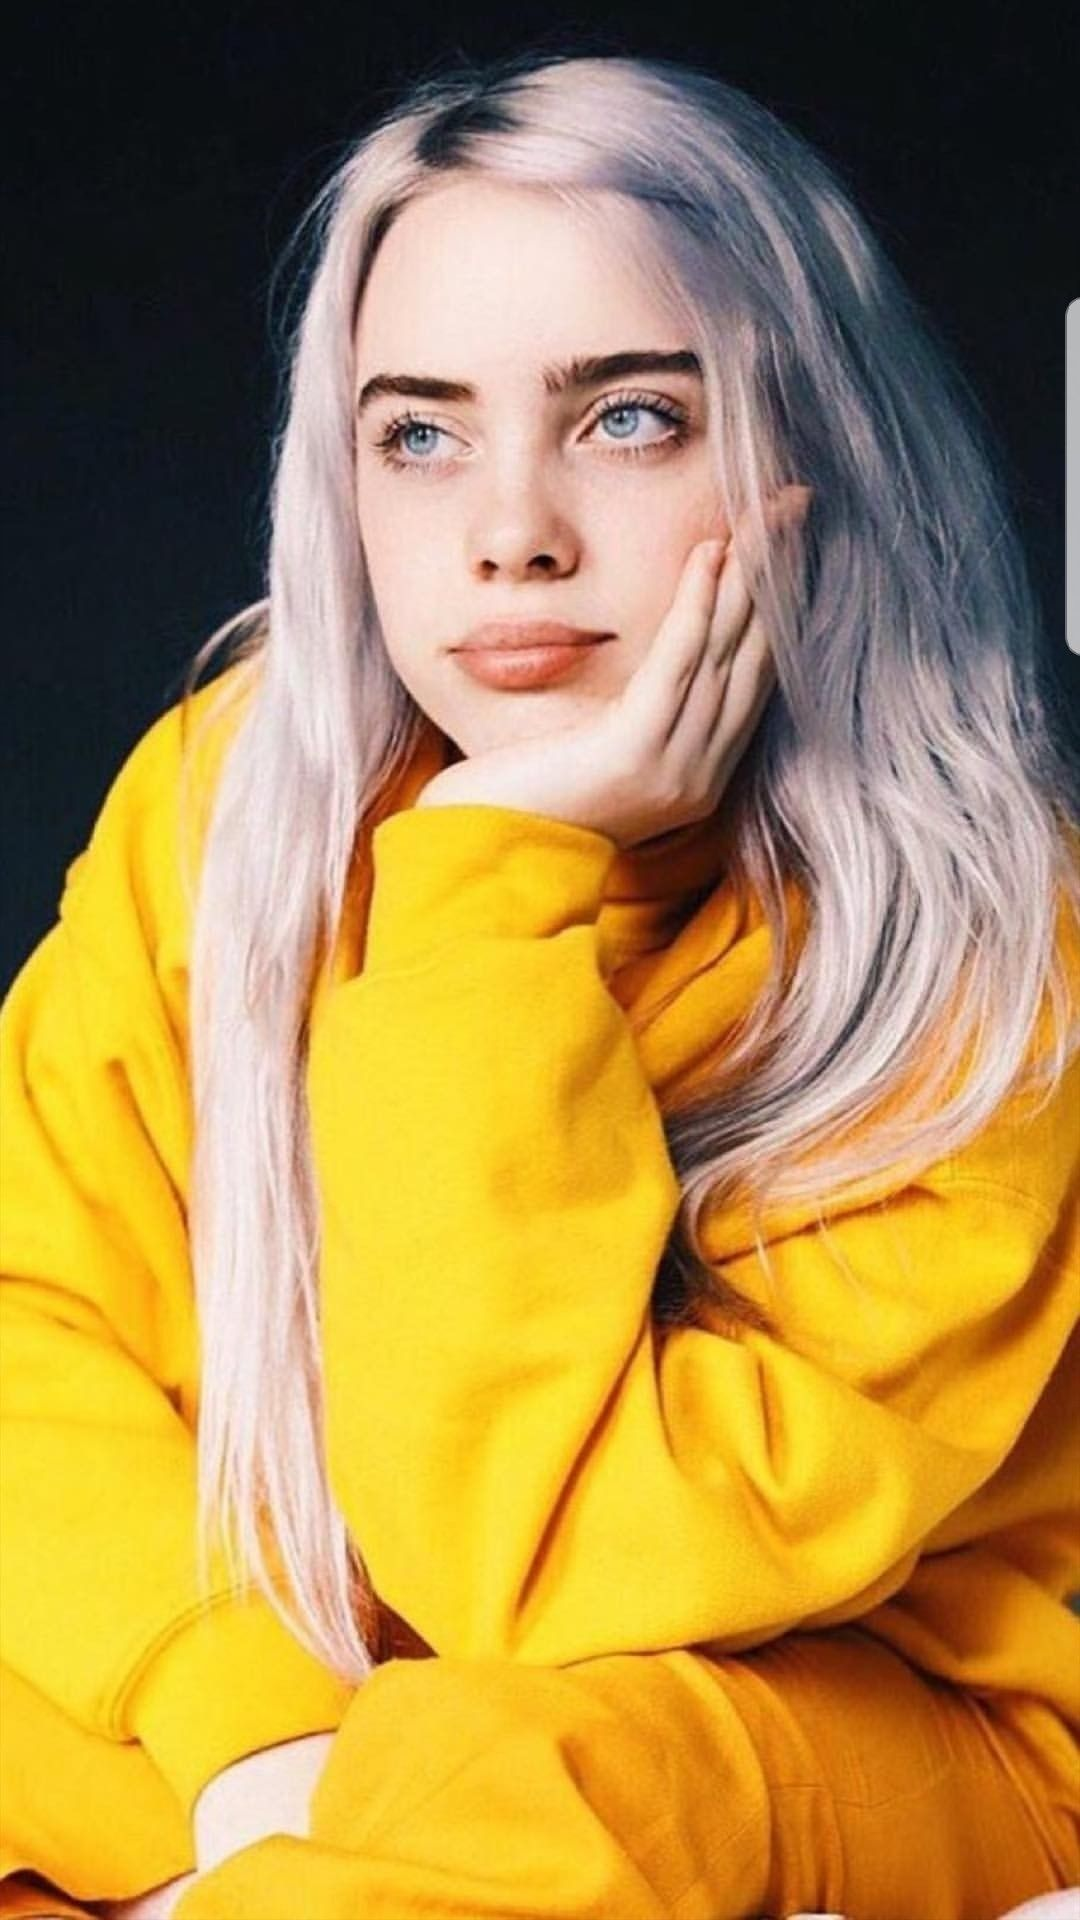 All The Girls Standing In The Line For The Bathroom: She39s A Avocado Billie Eilish In 2018 T Billie Eilish